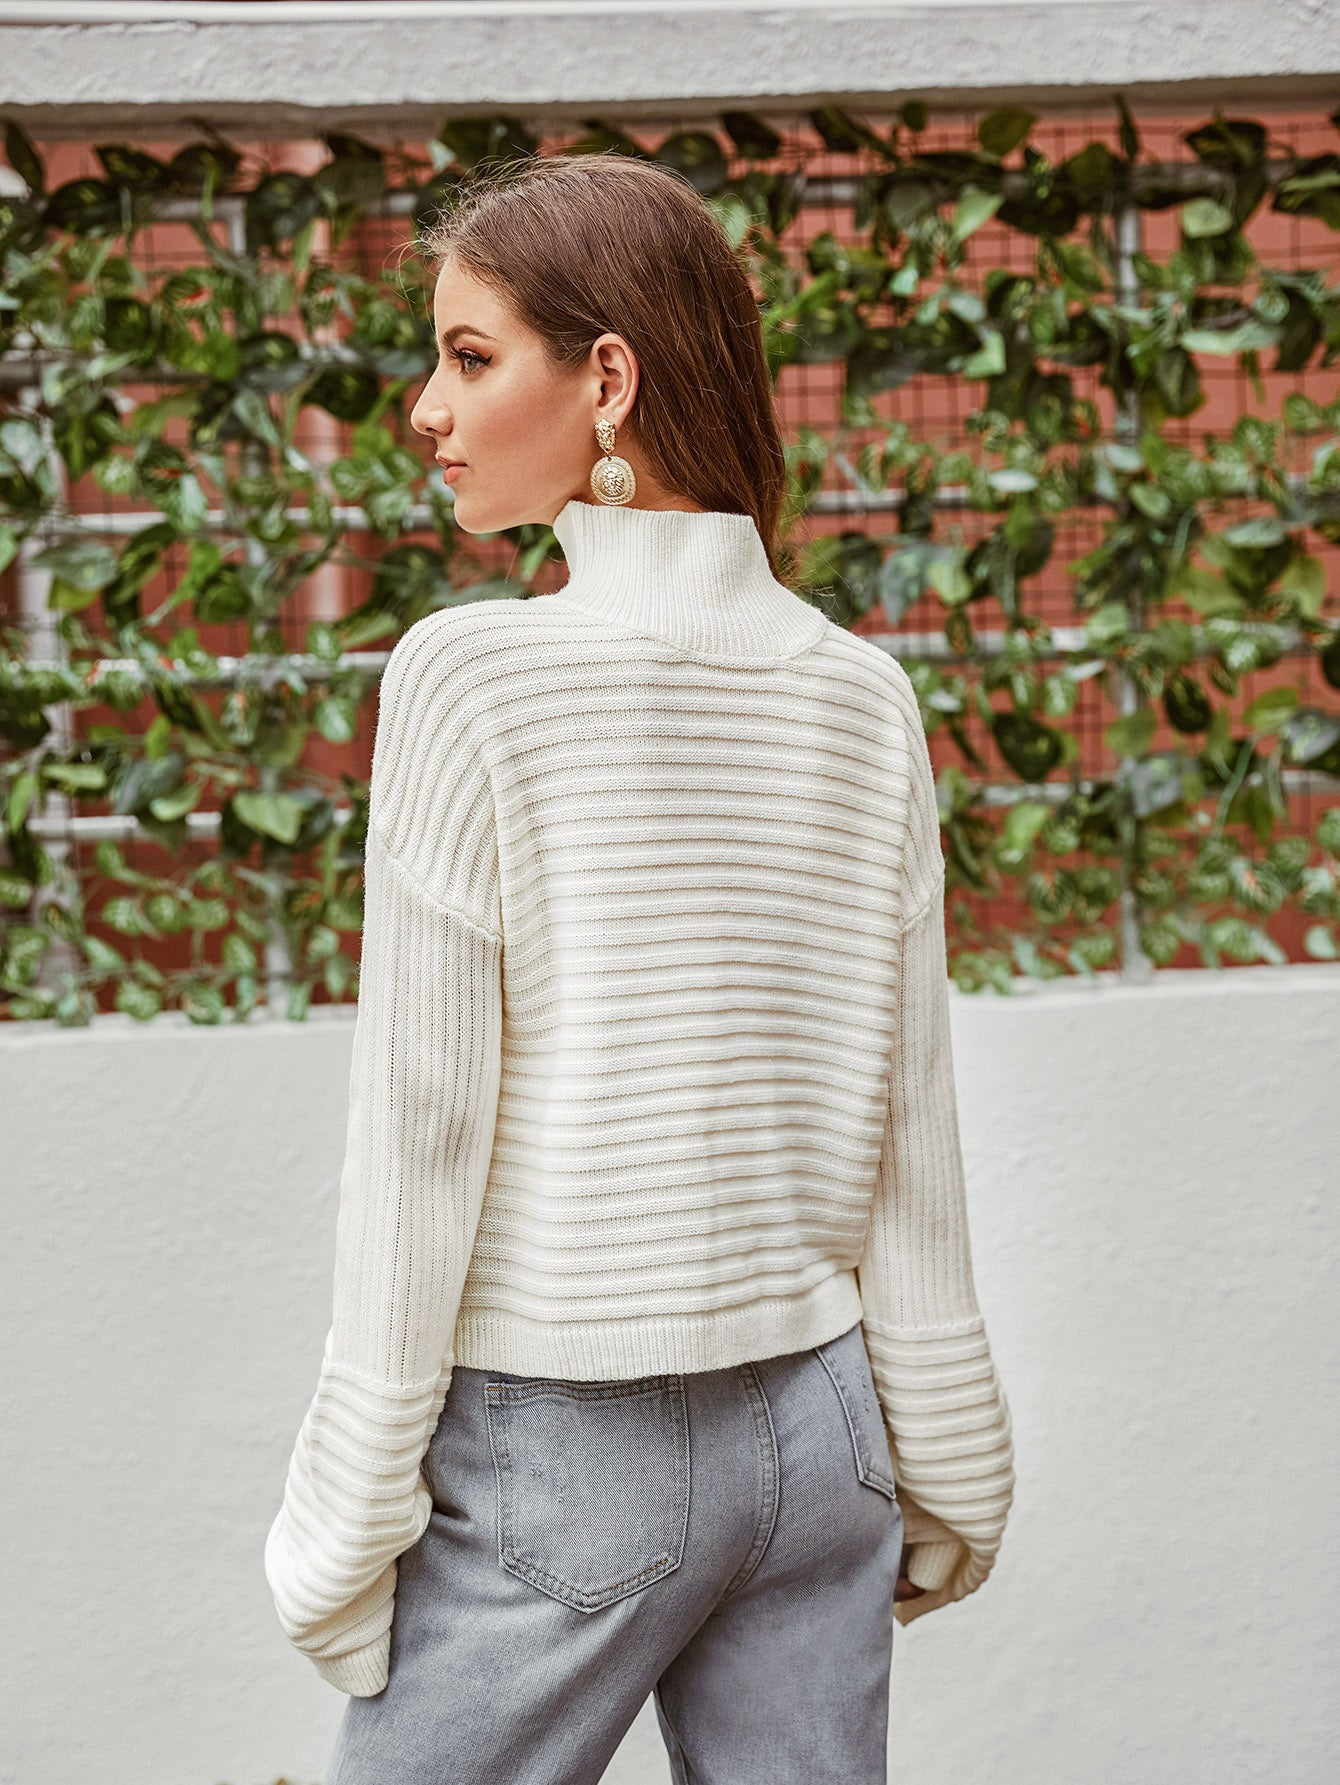 High Neck Drop Shoulder Sweater Autumn Winter